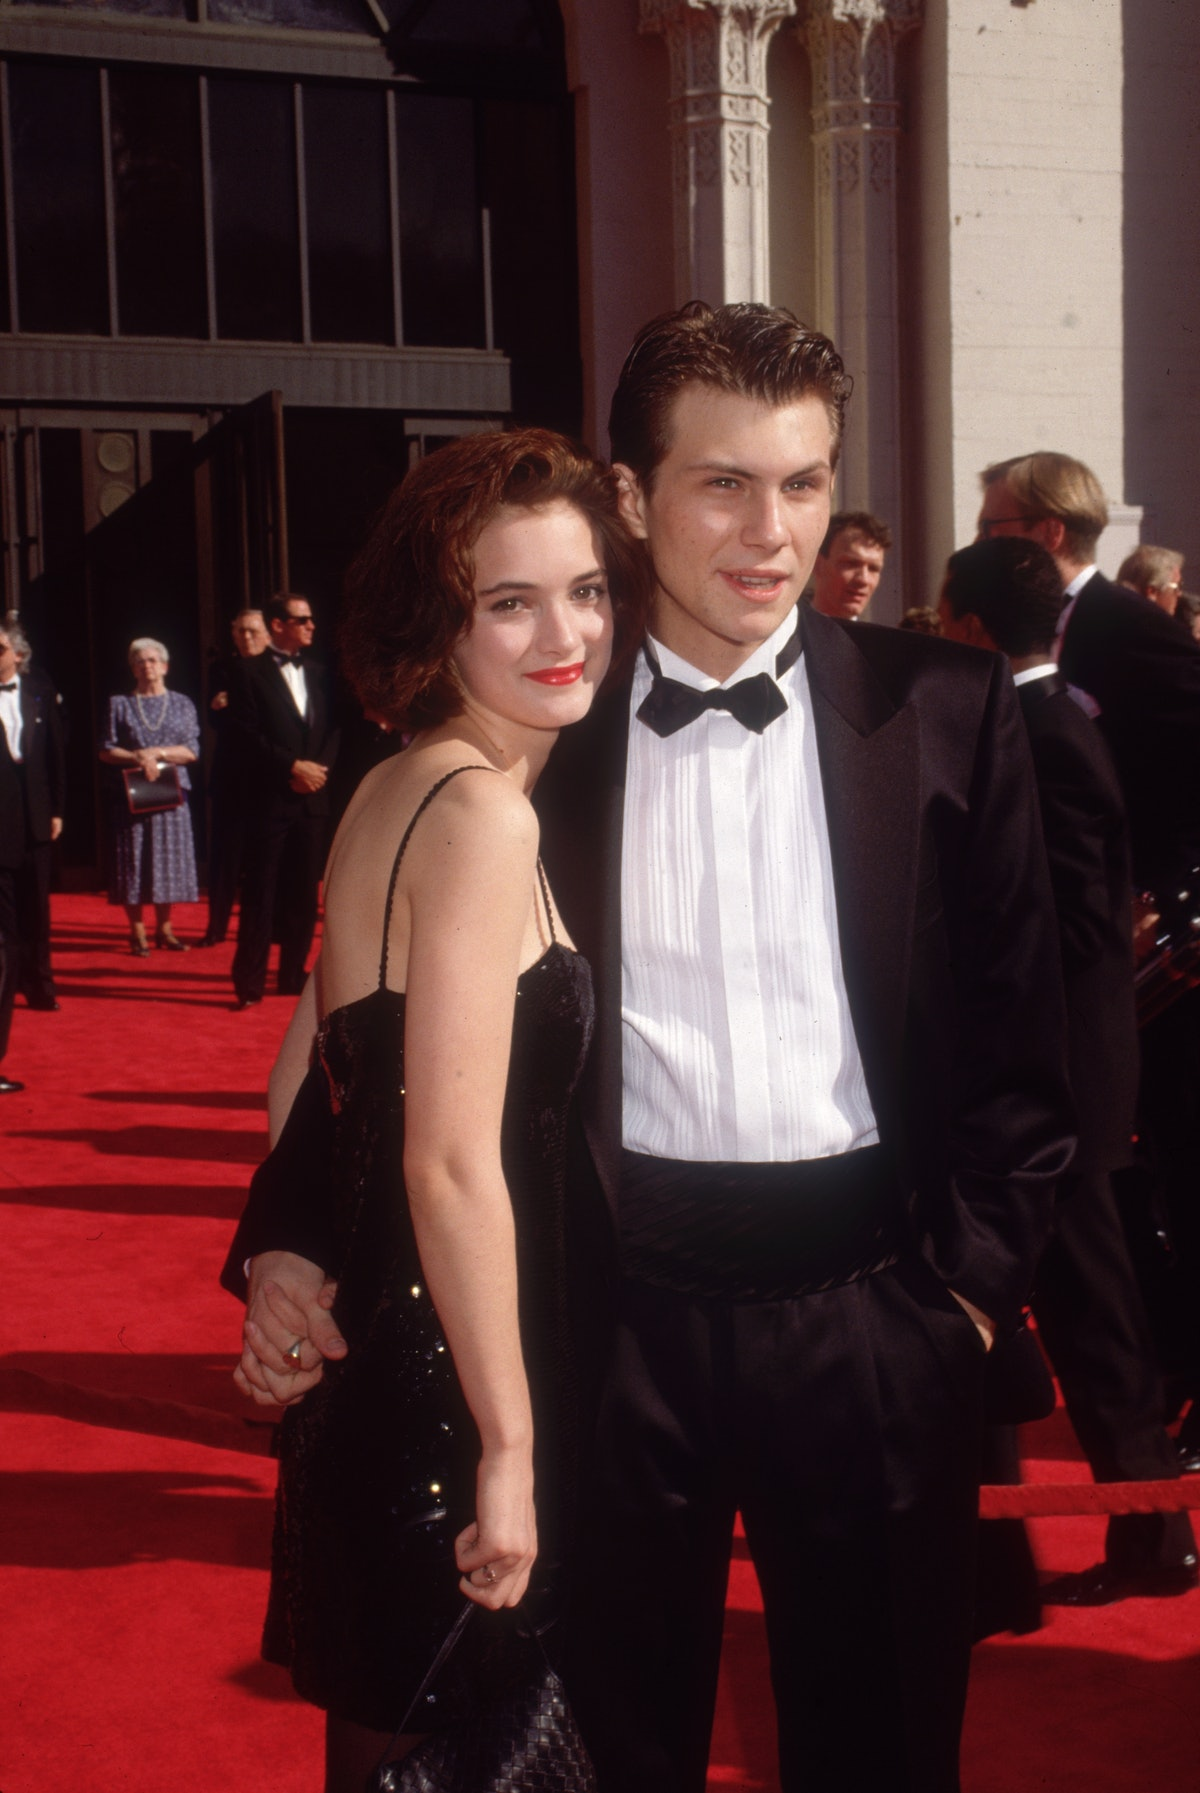 All of the beauty inspo from 1988's 'Heathers,' starring Winona Ryder and Christian Slater.